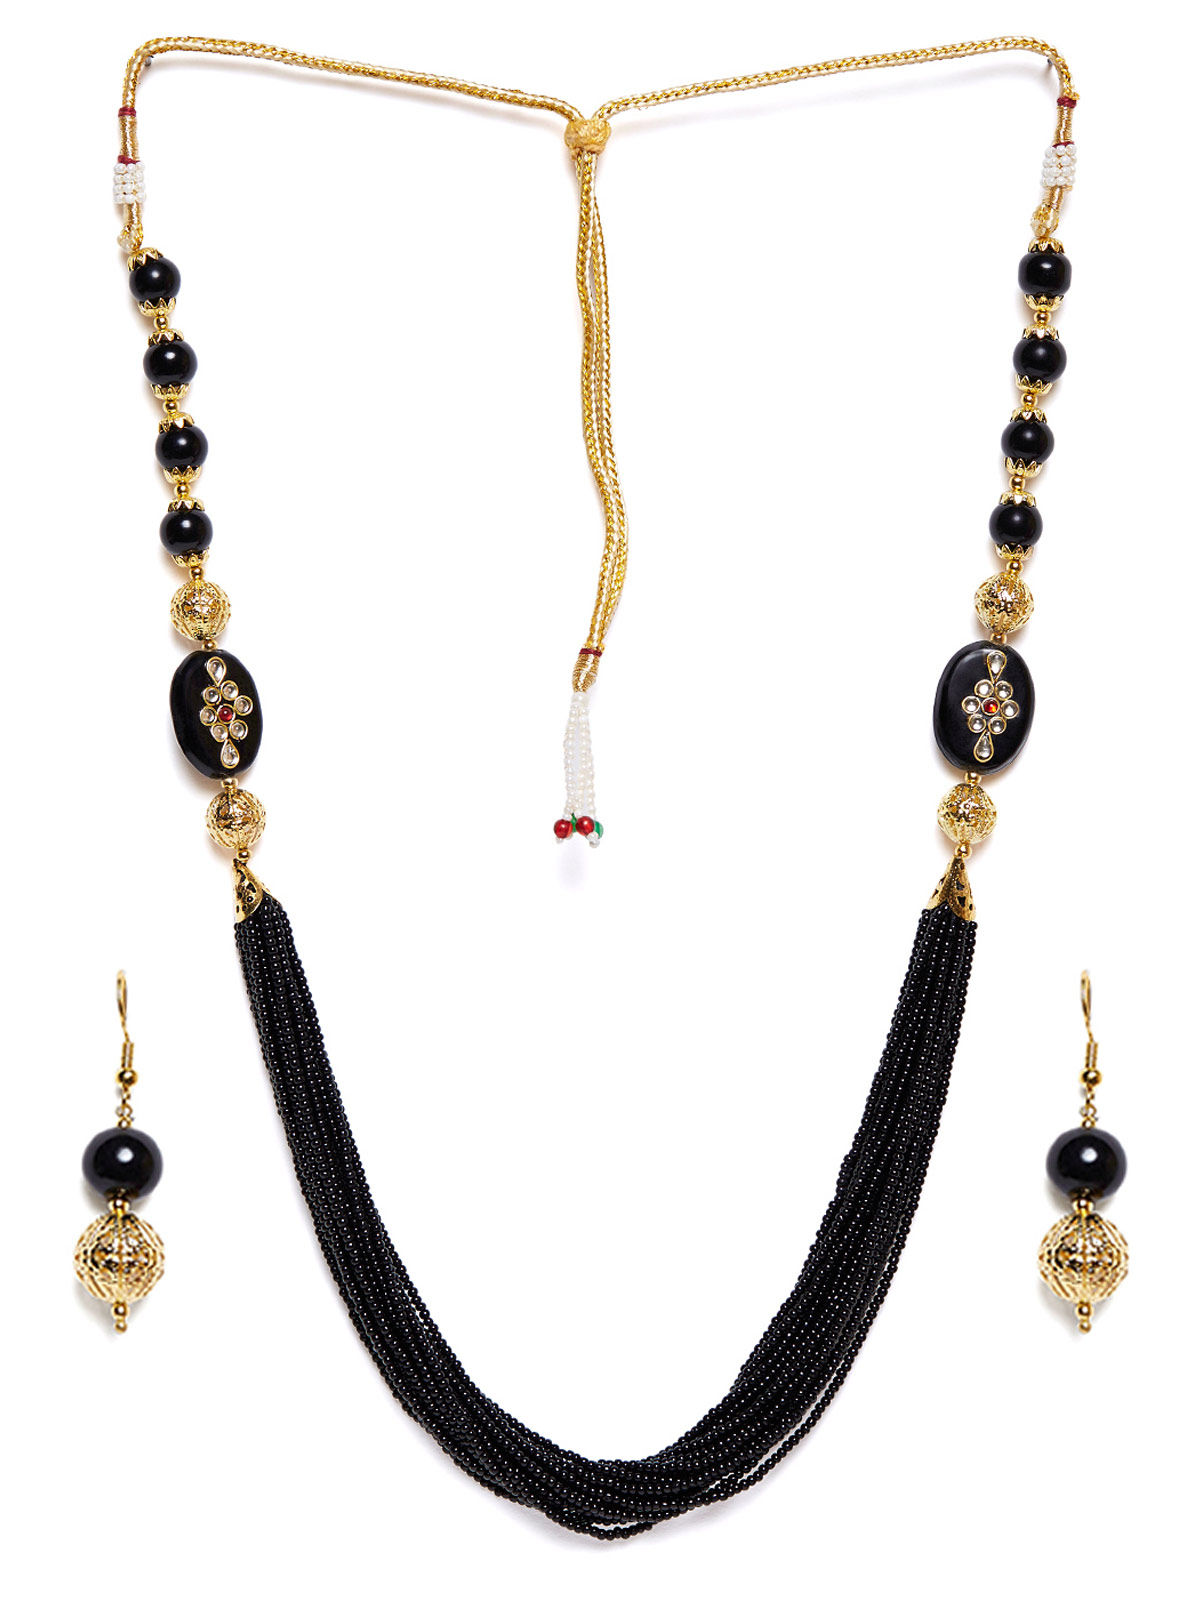 Imli Street black beaded neckpiece and earrings set